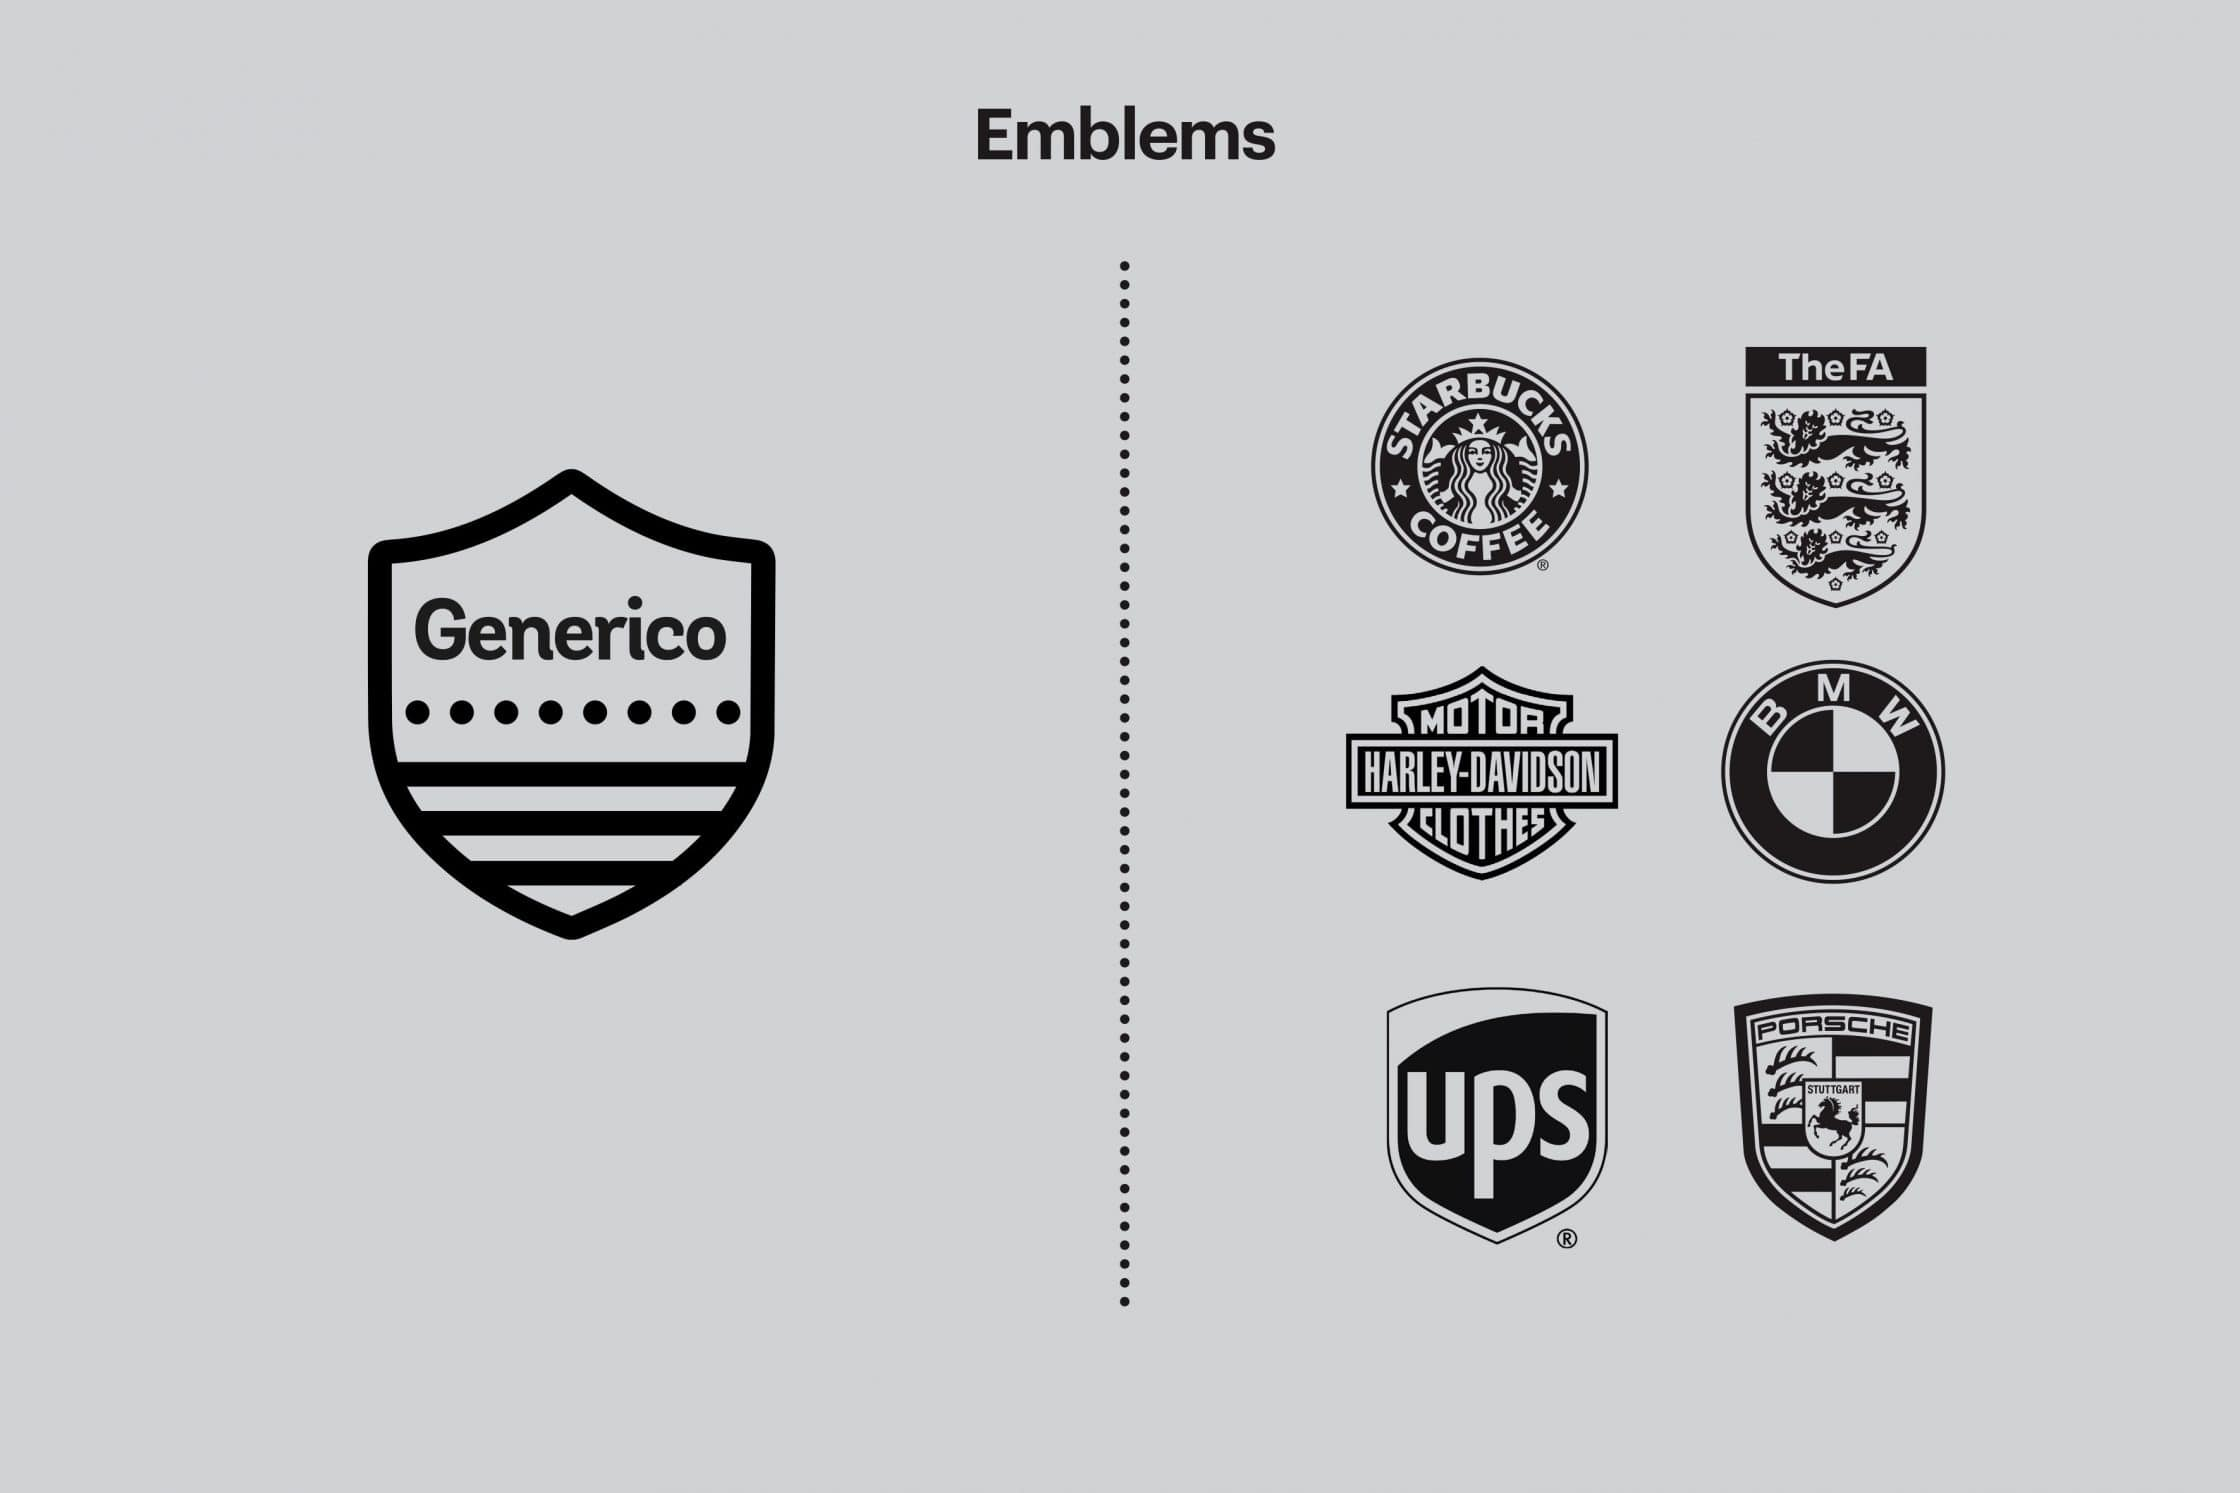 Example of emblems used by Generico and known brands.